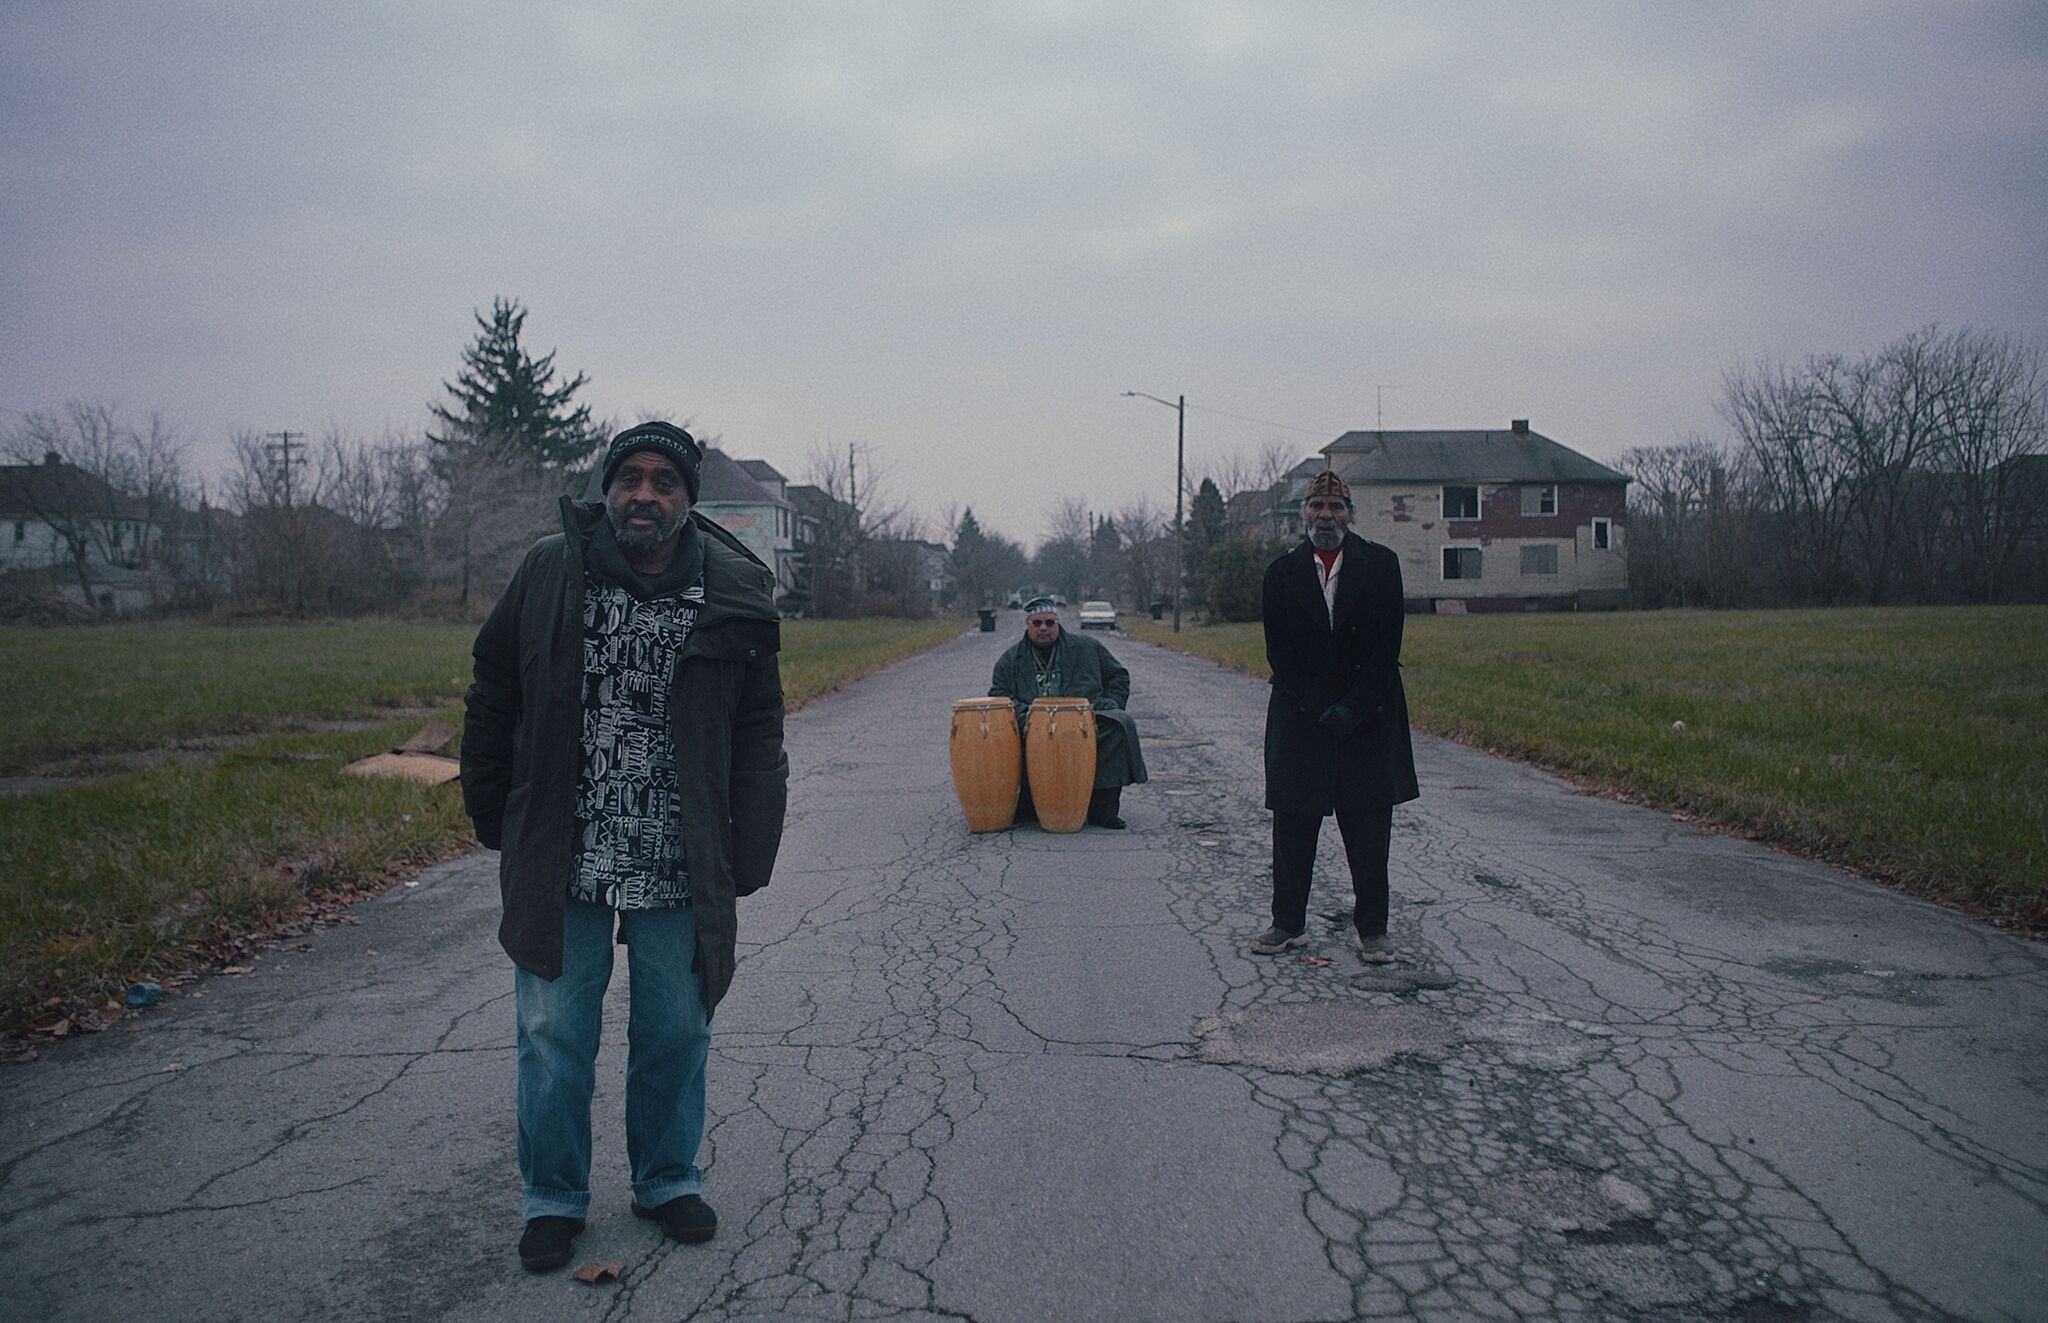 A video still of the people in the middle of a road, two standing and one sitting behind two large drums.